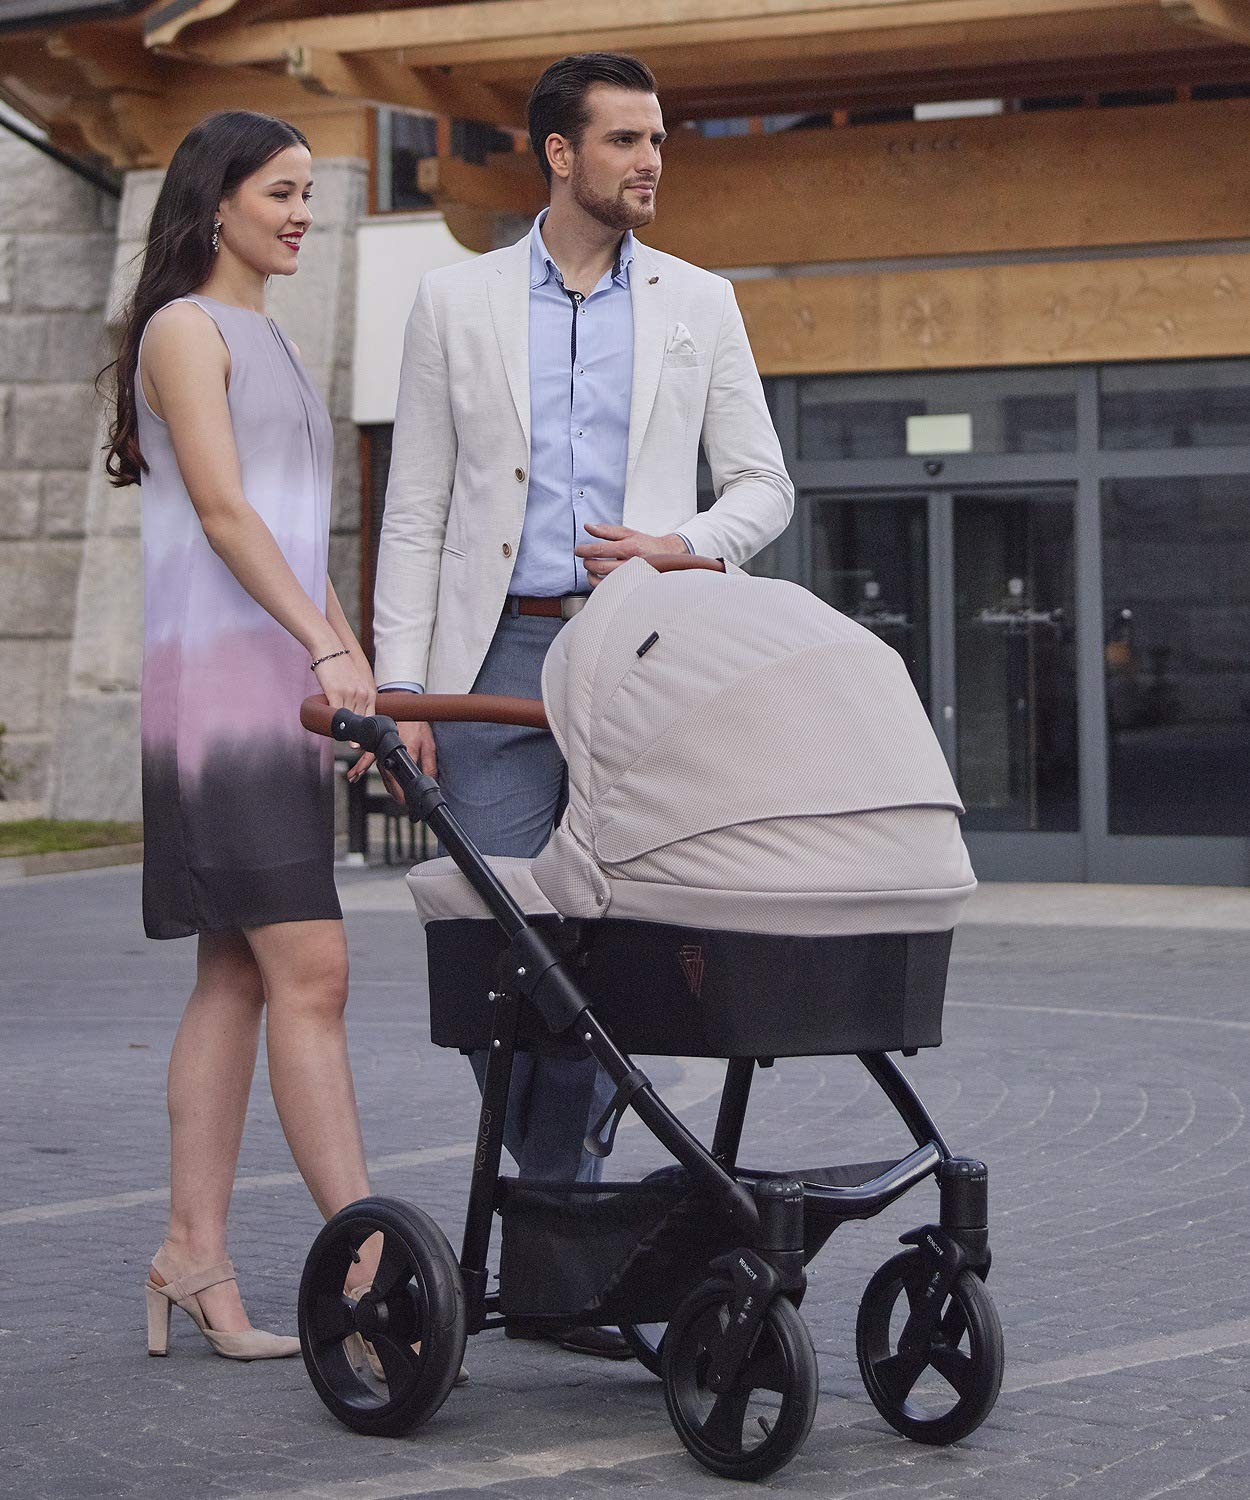 Venicci Gusto 2-in-1 Travel System - Cream - with Carrycot + Changing Bag + Footmuff + Raincover + Mosquito Net + 5-Point Harness and UV 50+ Fabric + Cup Holder  2-in-1 Pram and Pushchair with custom travel options Suitable for your baby from birth until approximately 36 months 5-point harness to enhance the safety of your child 4